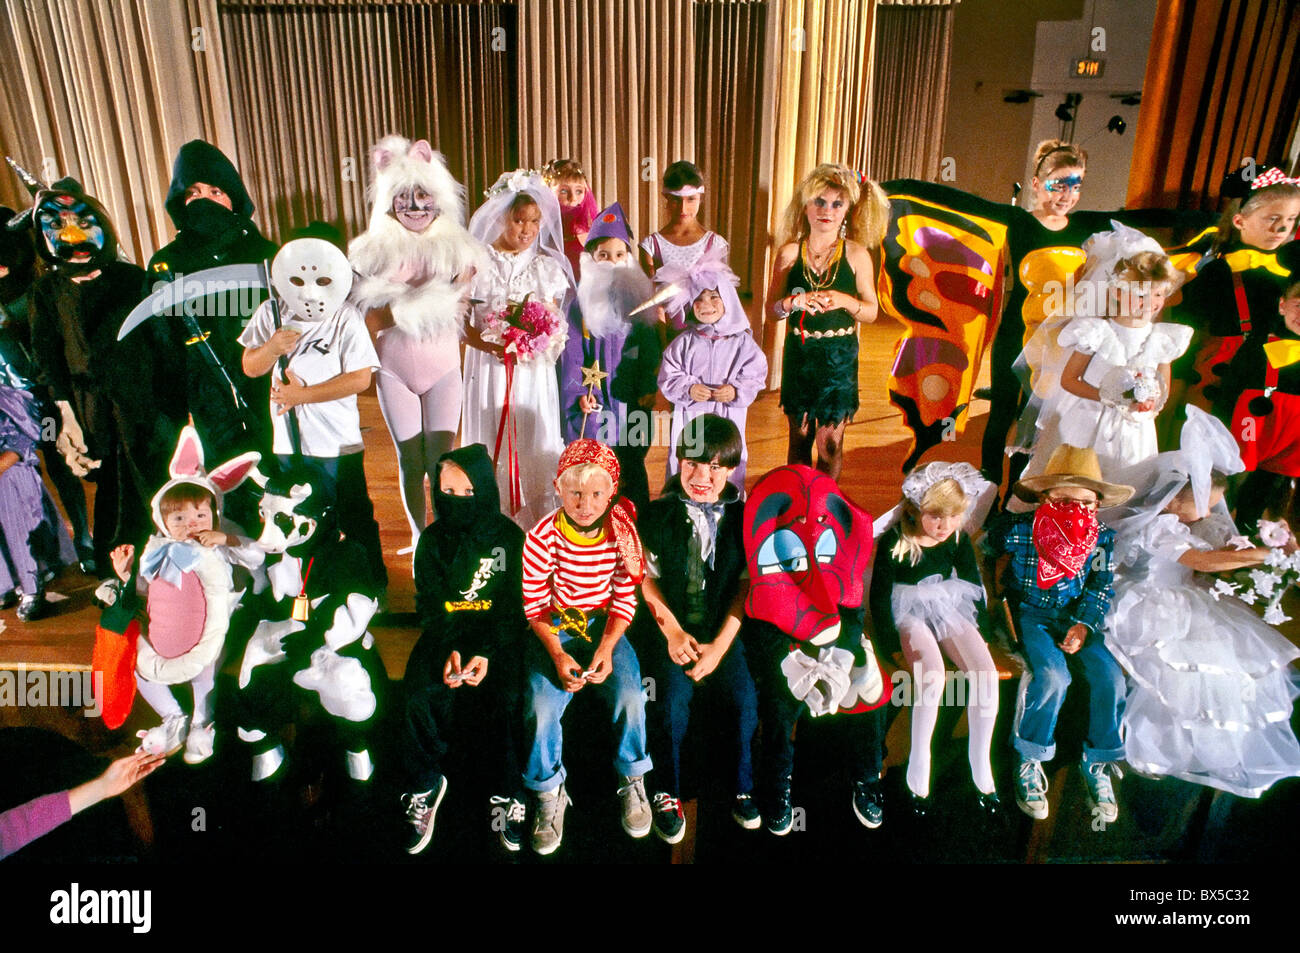 Children are dressed in Halloween costumes at a San Clemente California costume competition. - Stock Image